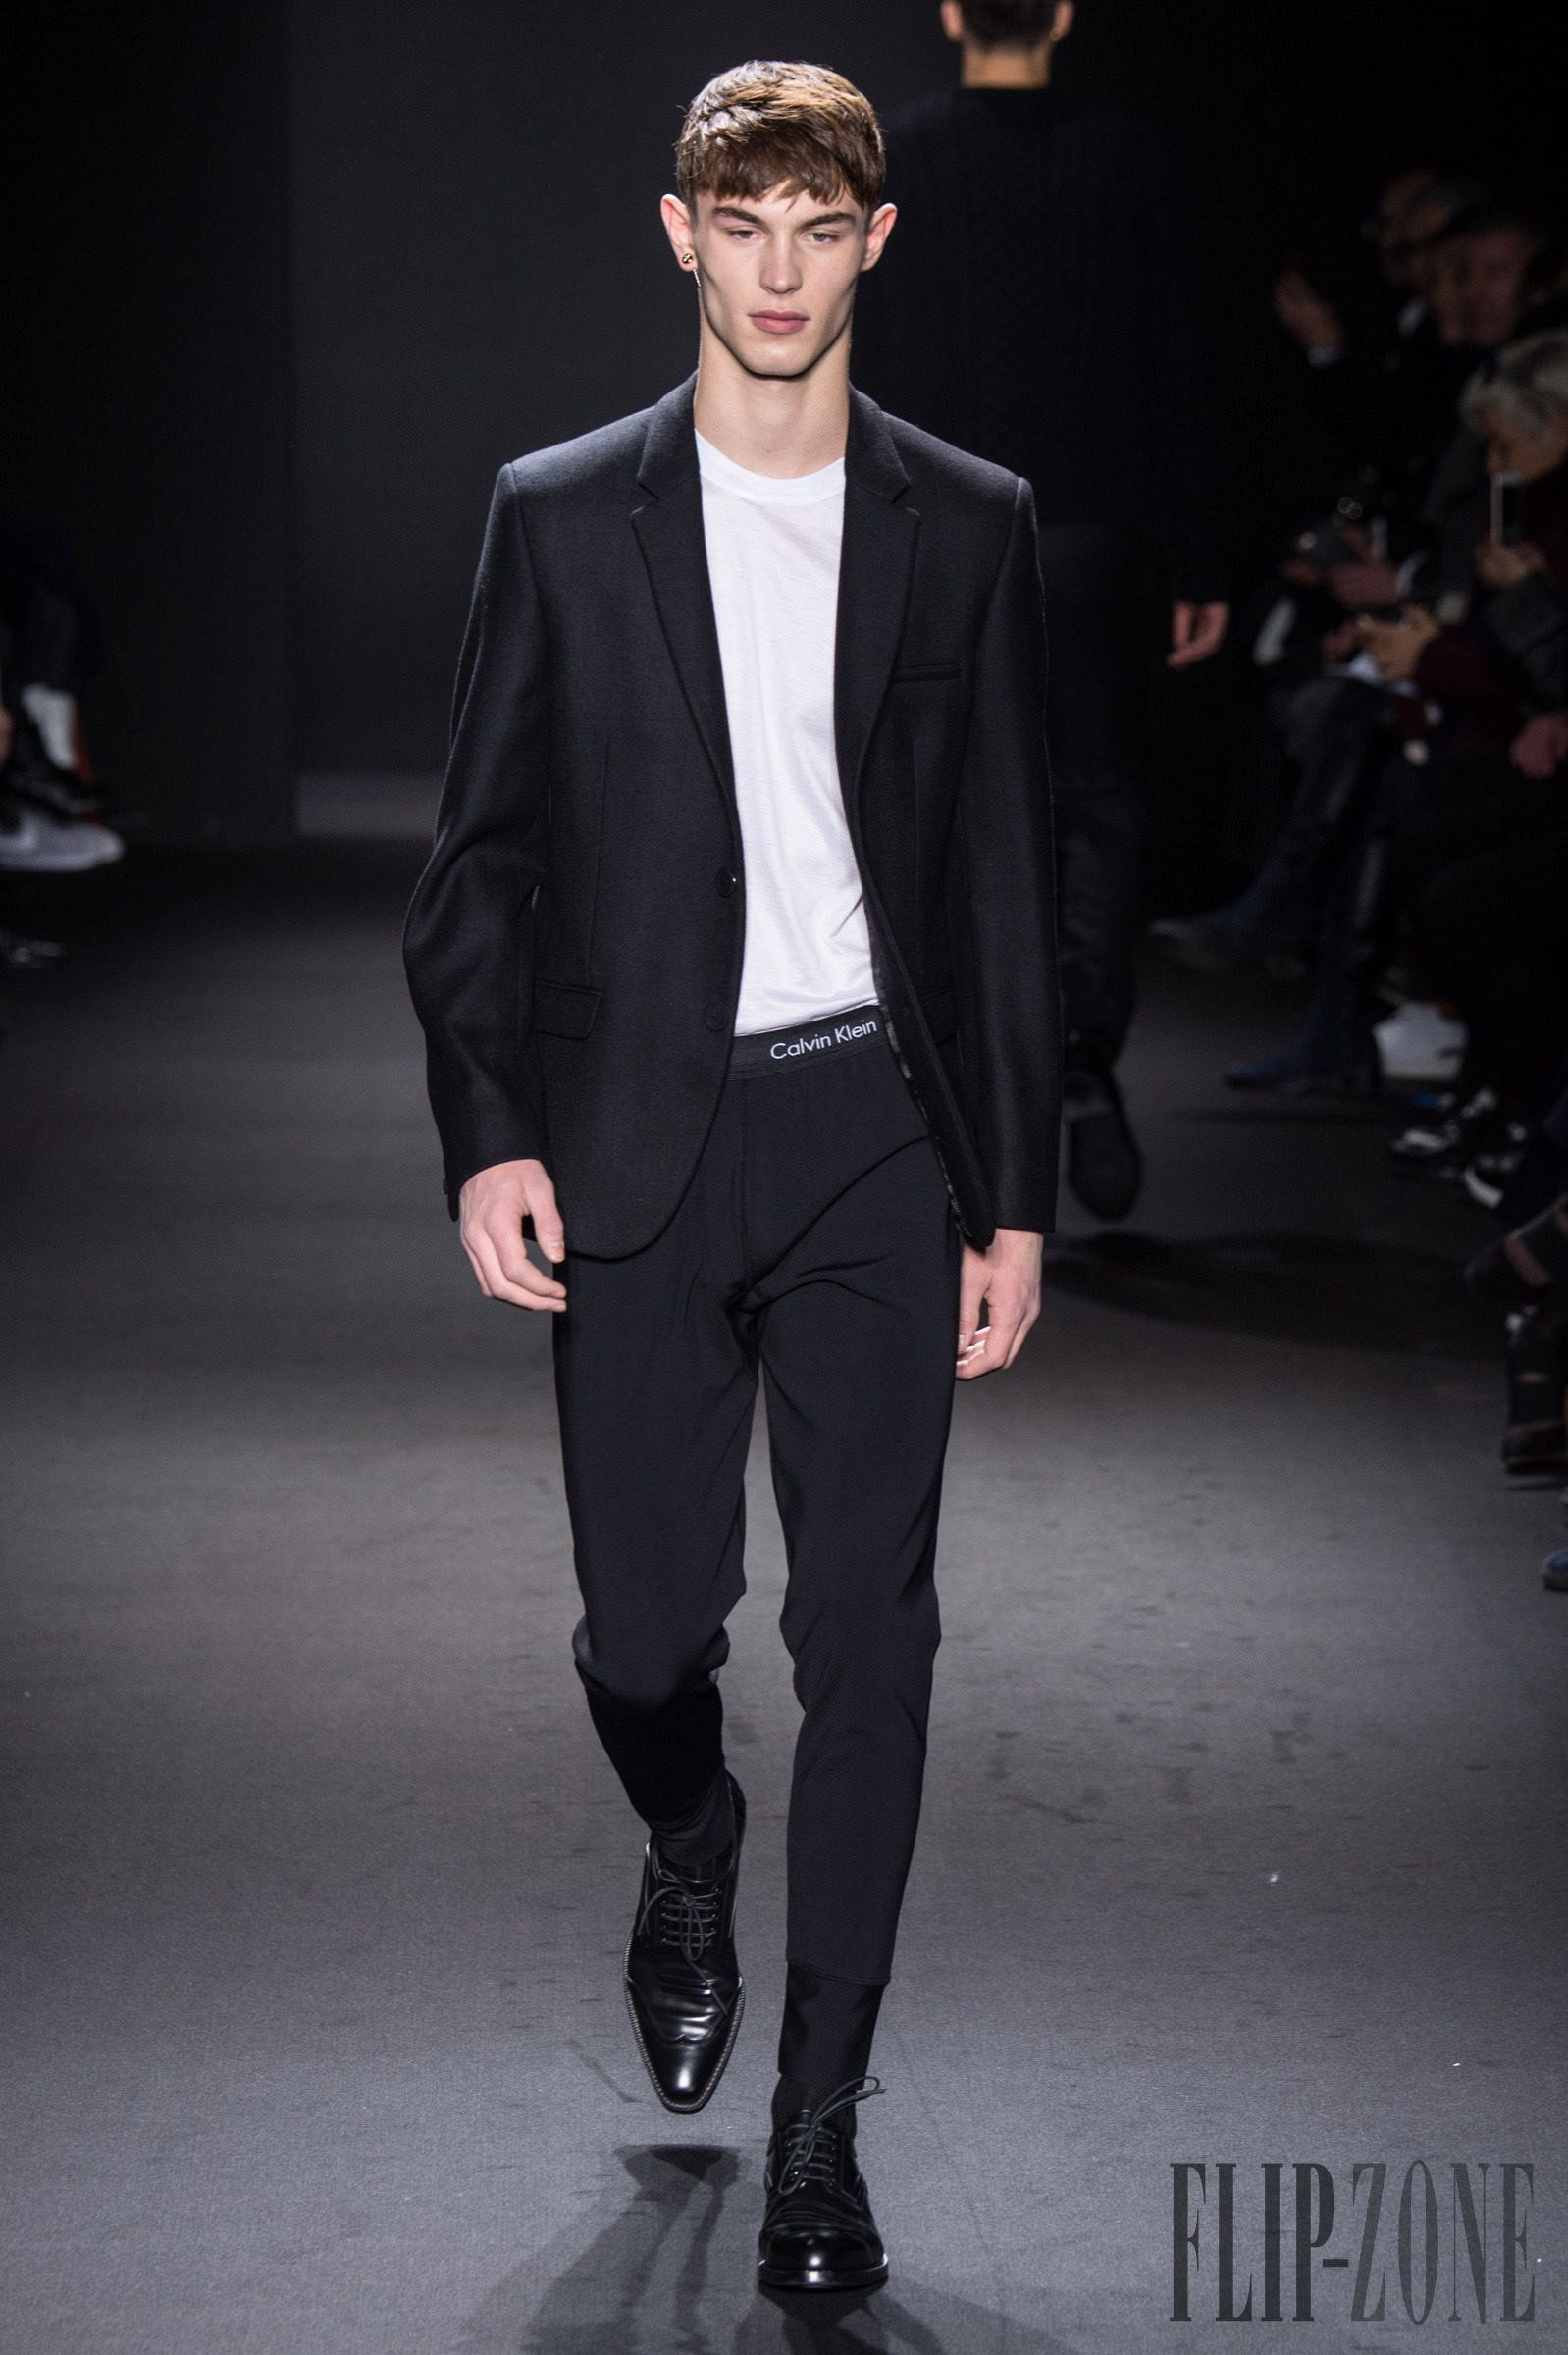 CALVIN KLEIN SPRING SUMMER 2016 MEN'S COLLECTION | The